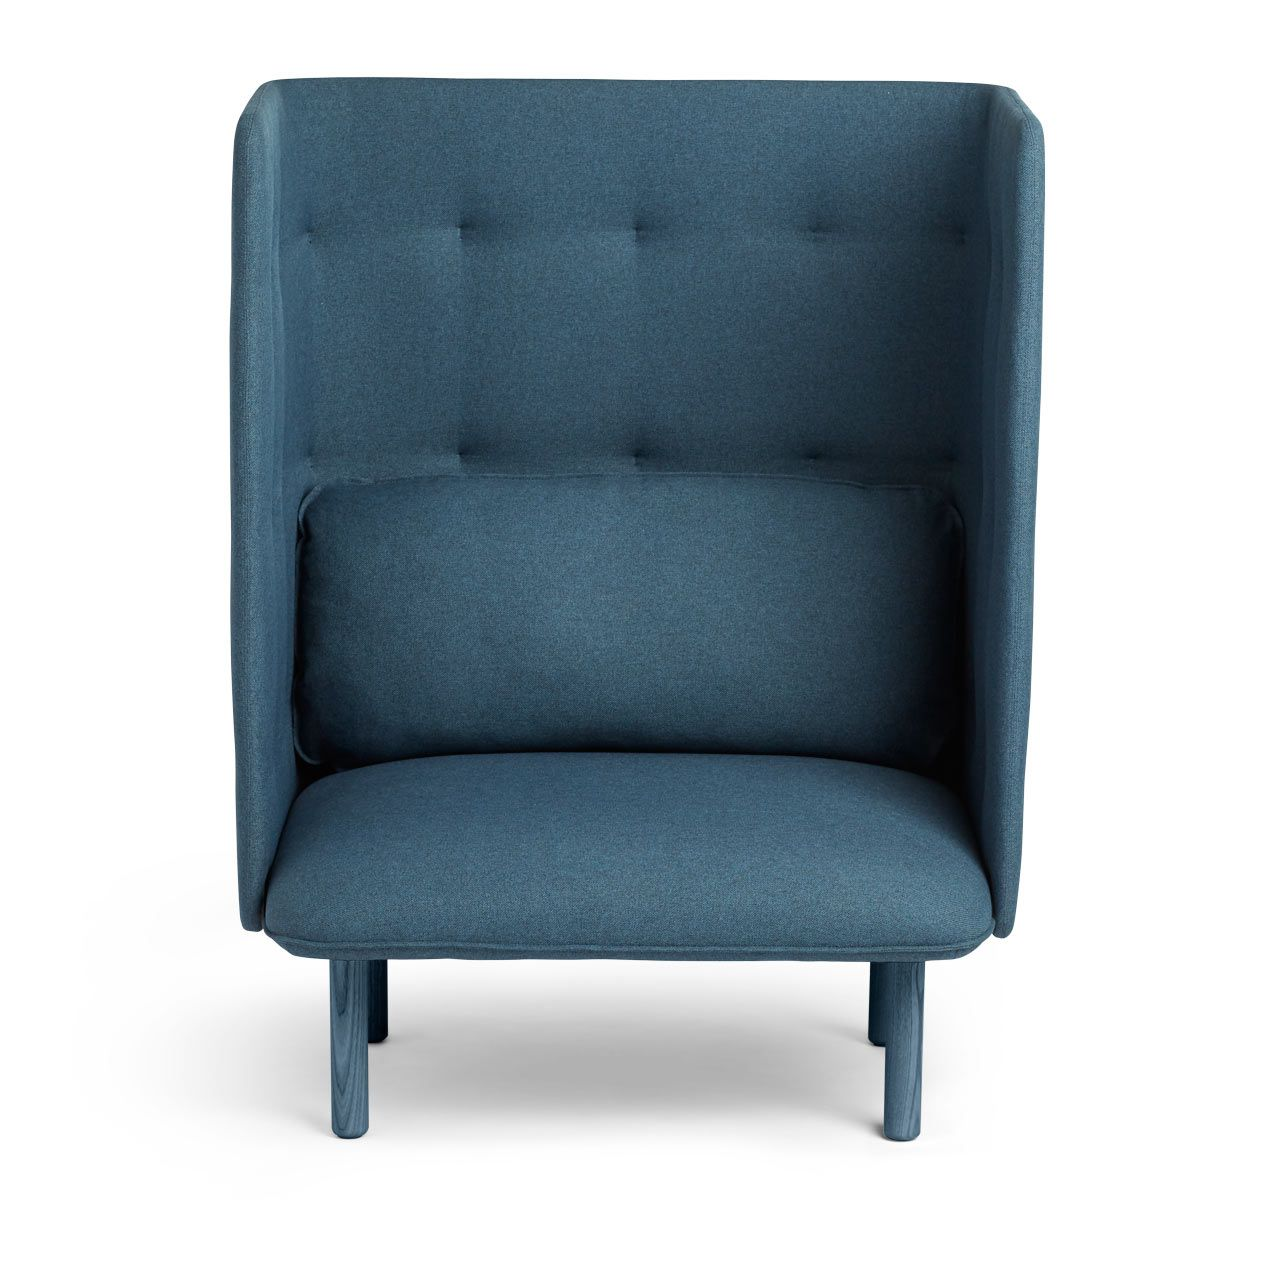 Best Qt Privacy Lounge Chair From Poppin Lounge Seating 640 x 480